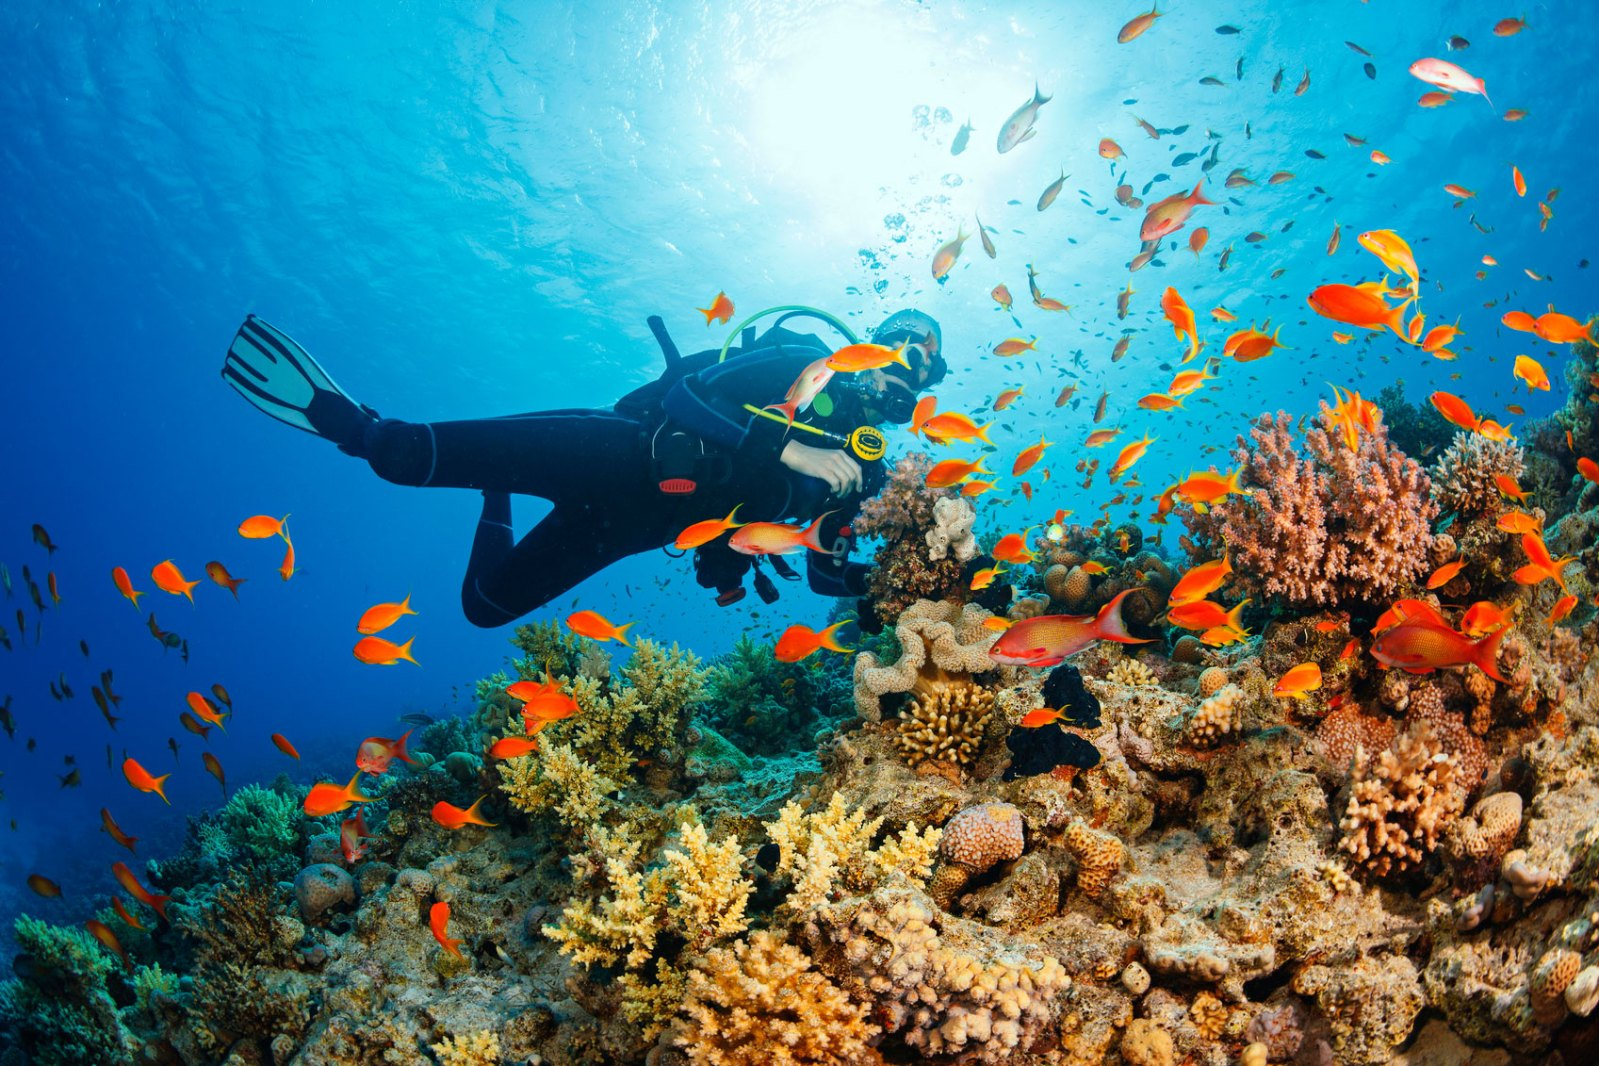 Underwater Scuba diver explore and enjoy Coral reef Sea life